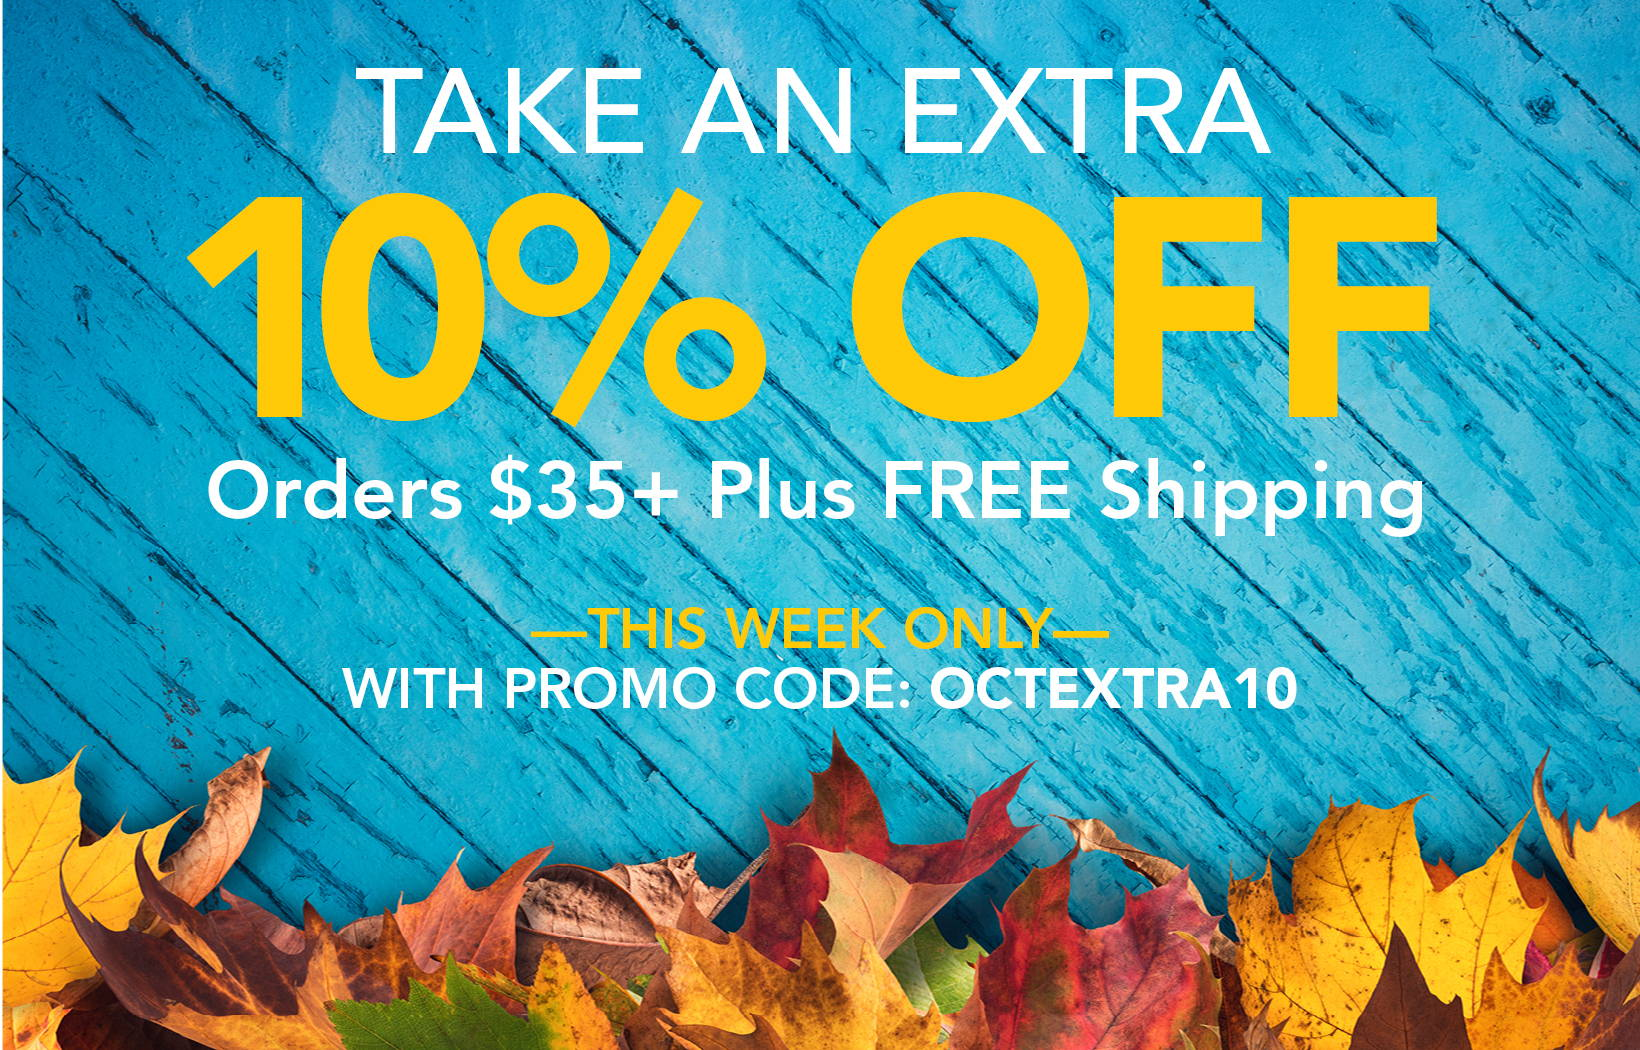 Take an extra 10% off orders $35+ and get free shipping with code OCTEXTRA10